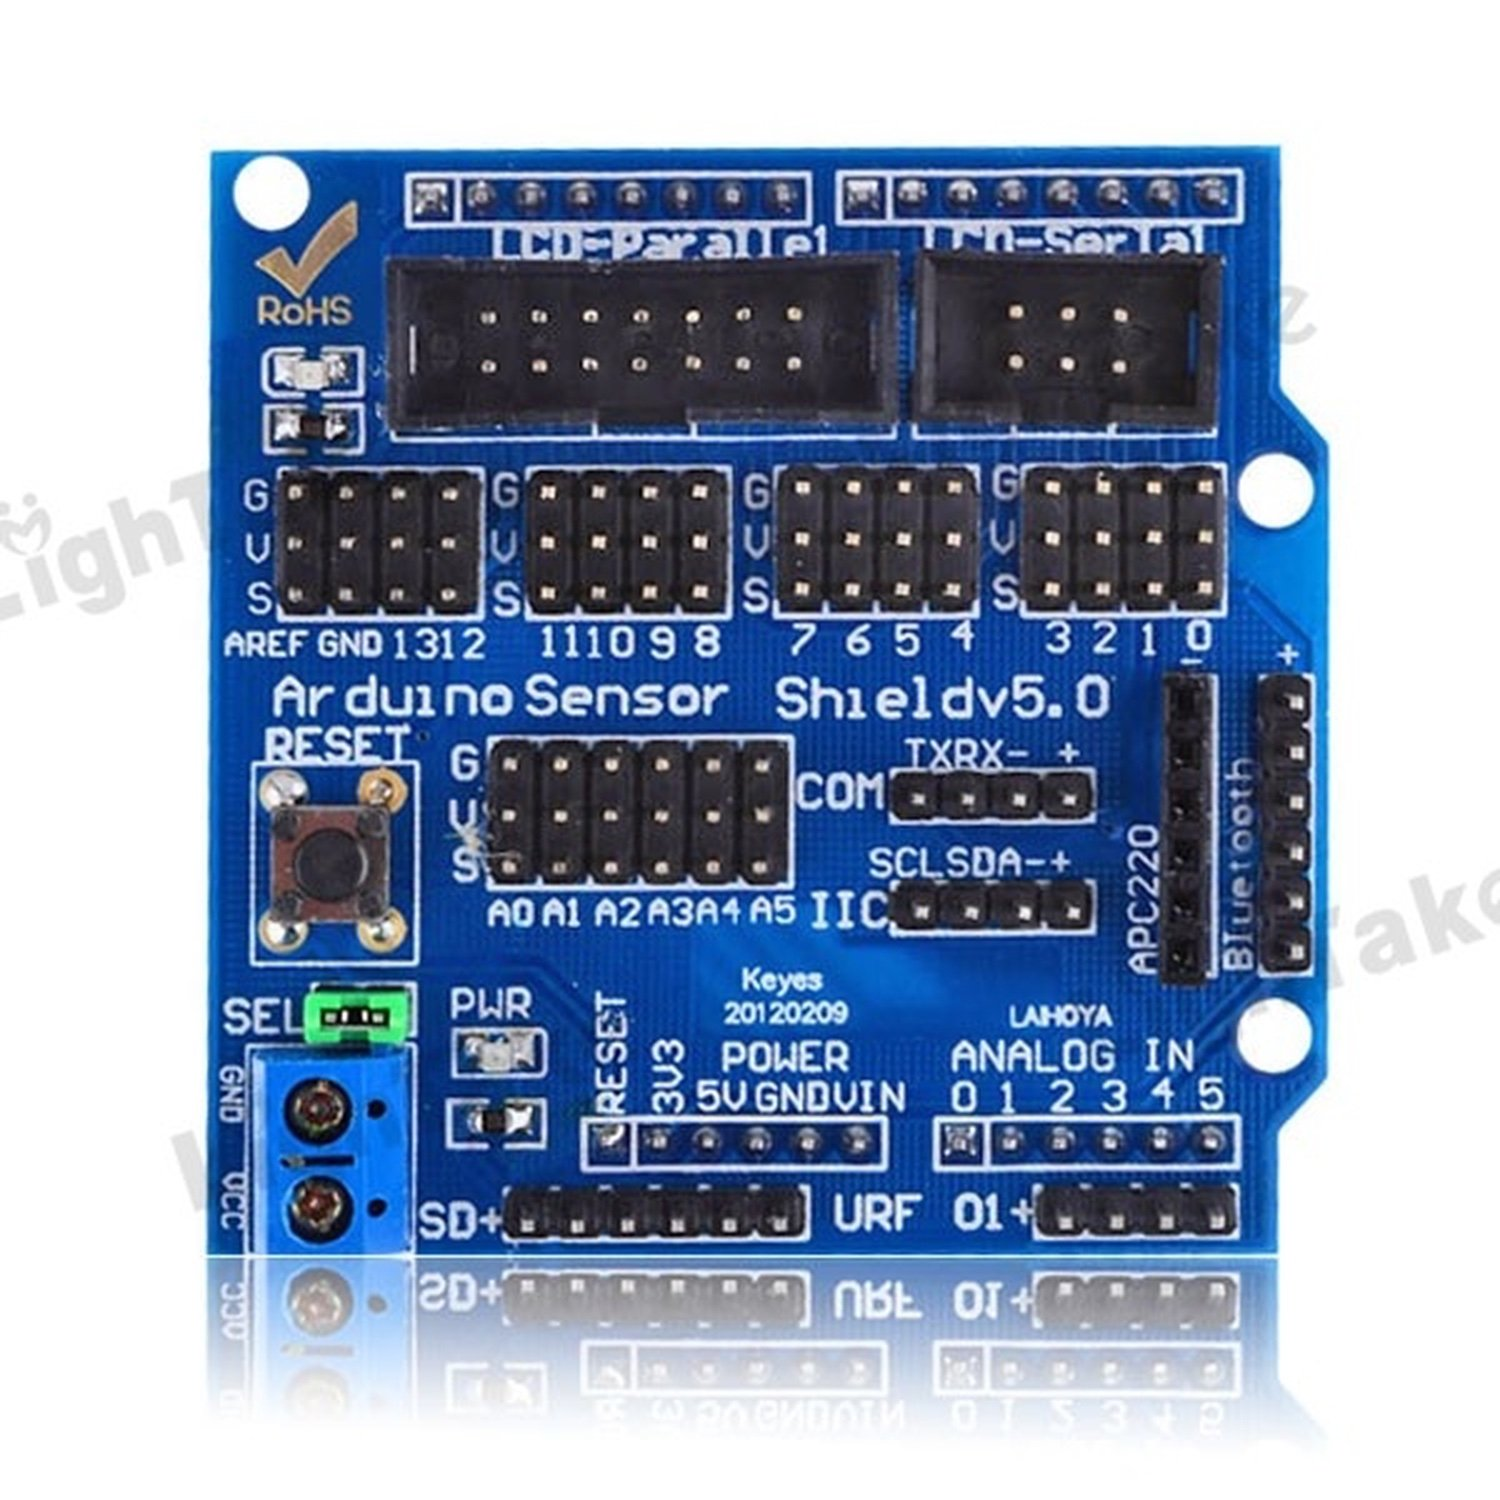 Sensor Shield V5.0 [Arduino compatible] new italian original 9 axes motion shield for arduino based bno055 integrated accelerometer gyroscope geomagnetic sensor etc